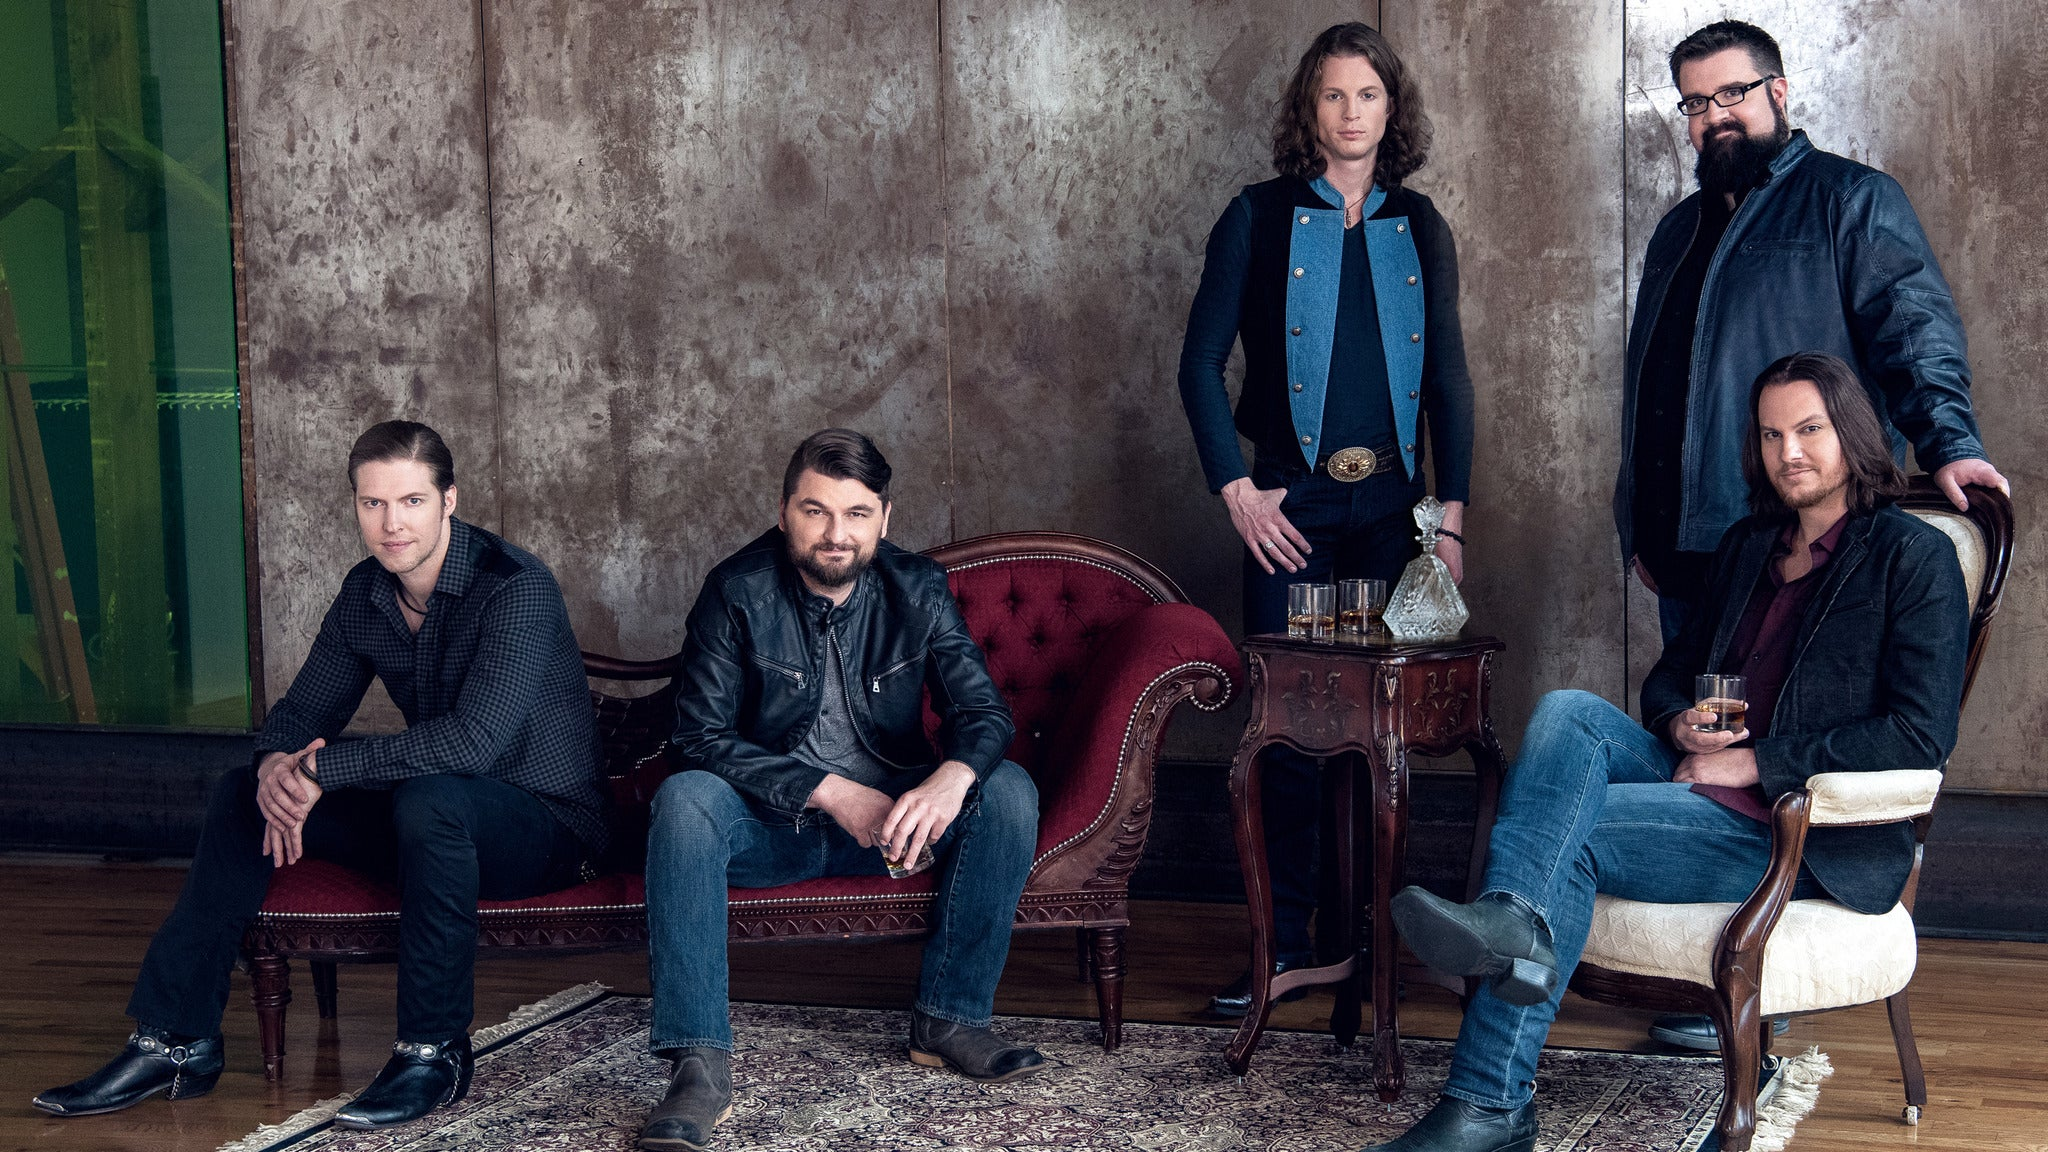 Home Free at Metropolitan Theatre